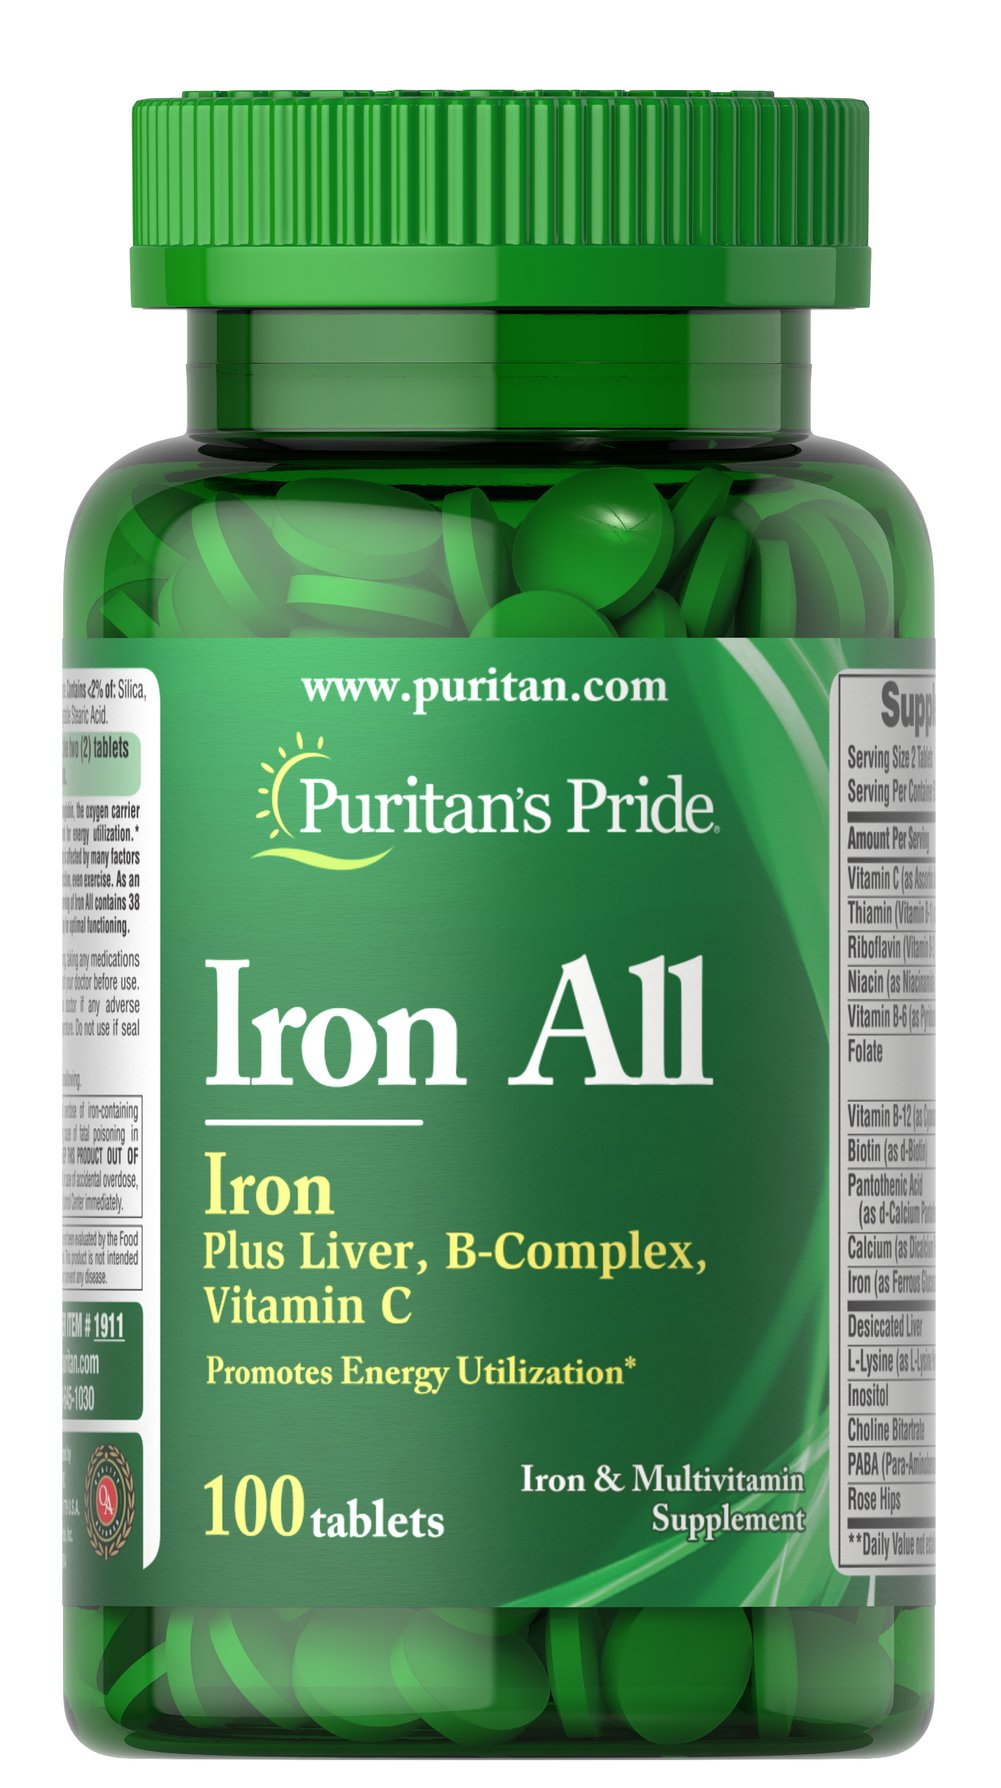 Iron All Iron <p>A Synergistic Iron Multi-Formula for Maximum Assimilation!</p><p>Contains 19 mg Iron with added B Vitamins, Vitamin C, Vitamin B-12</p> 100 Tablets  $7.99